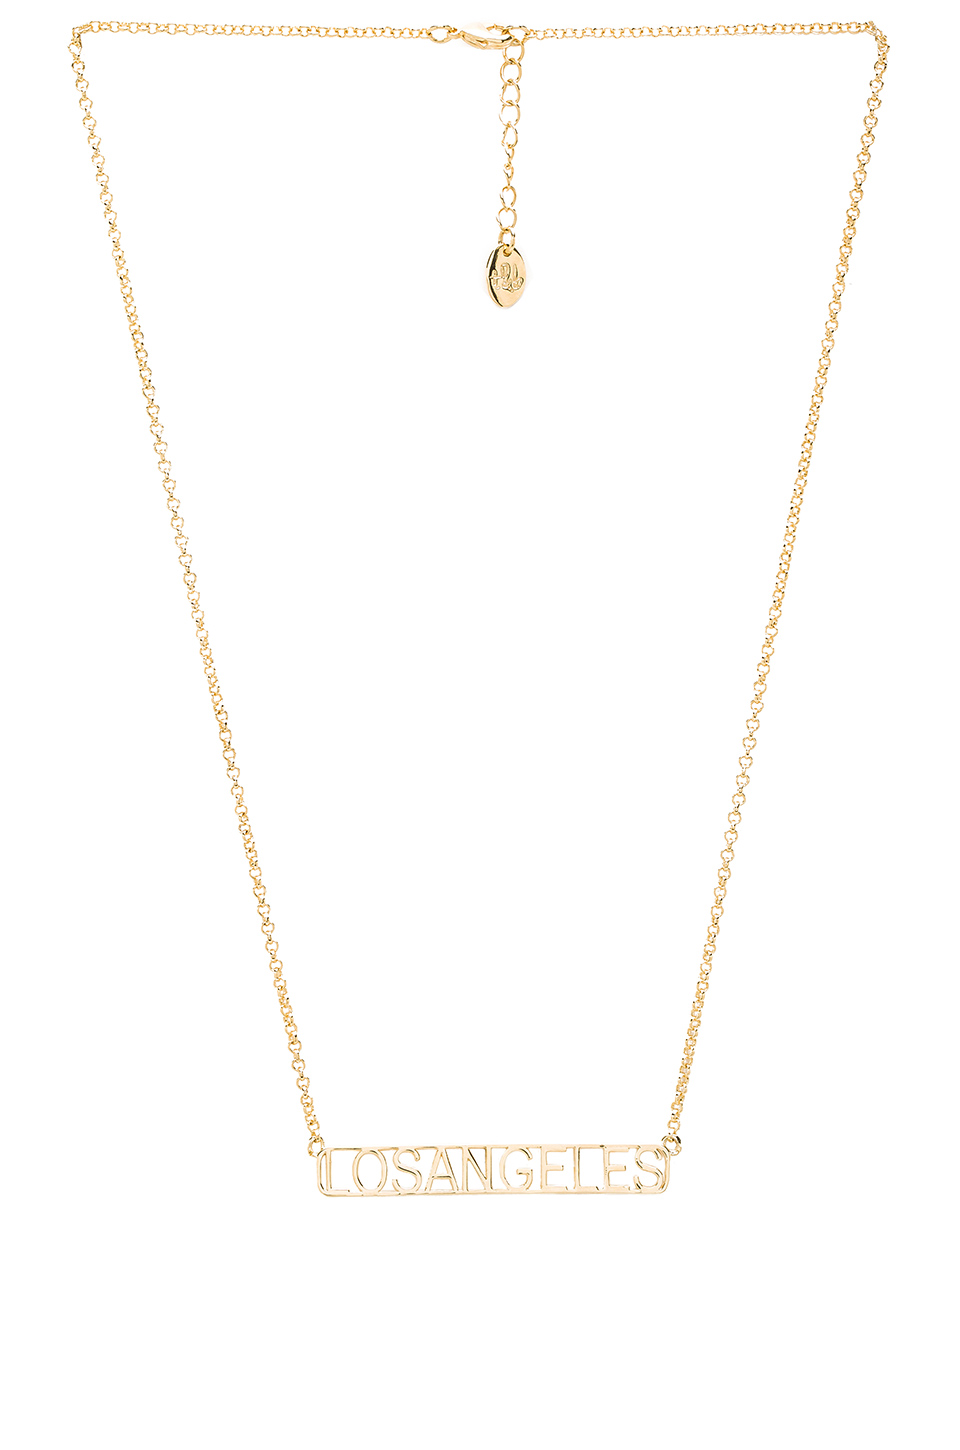 LOS ANGELES NECKLACE - $98